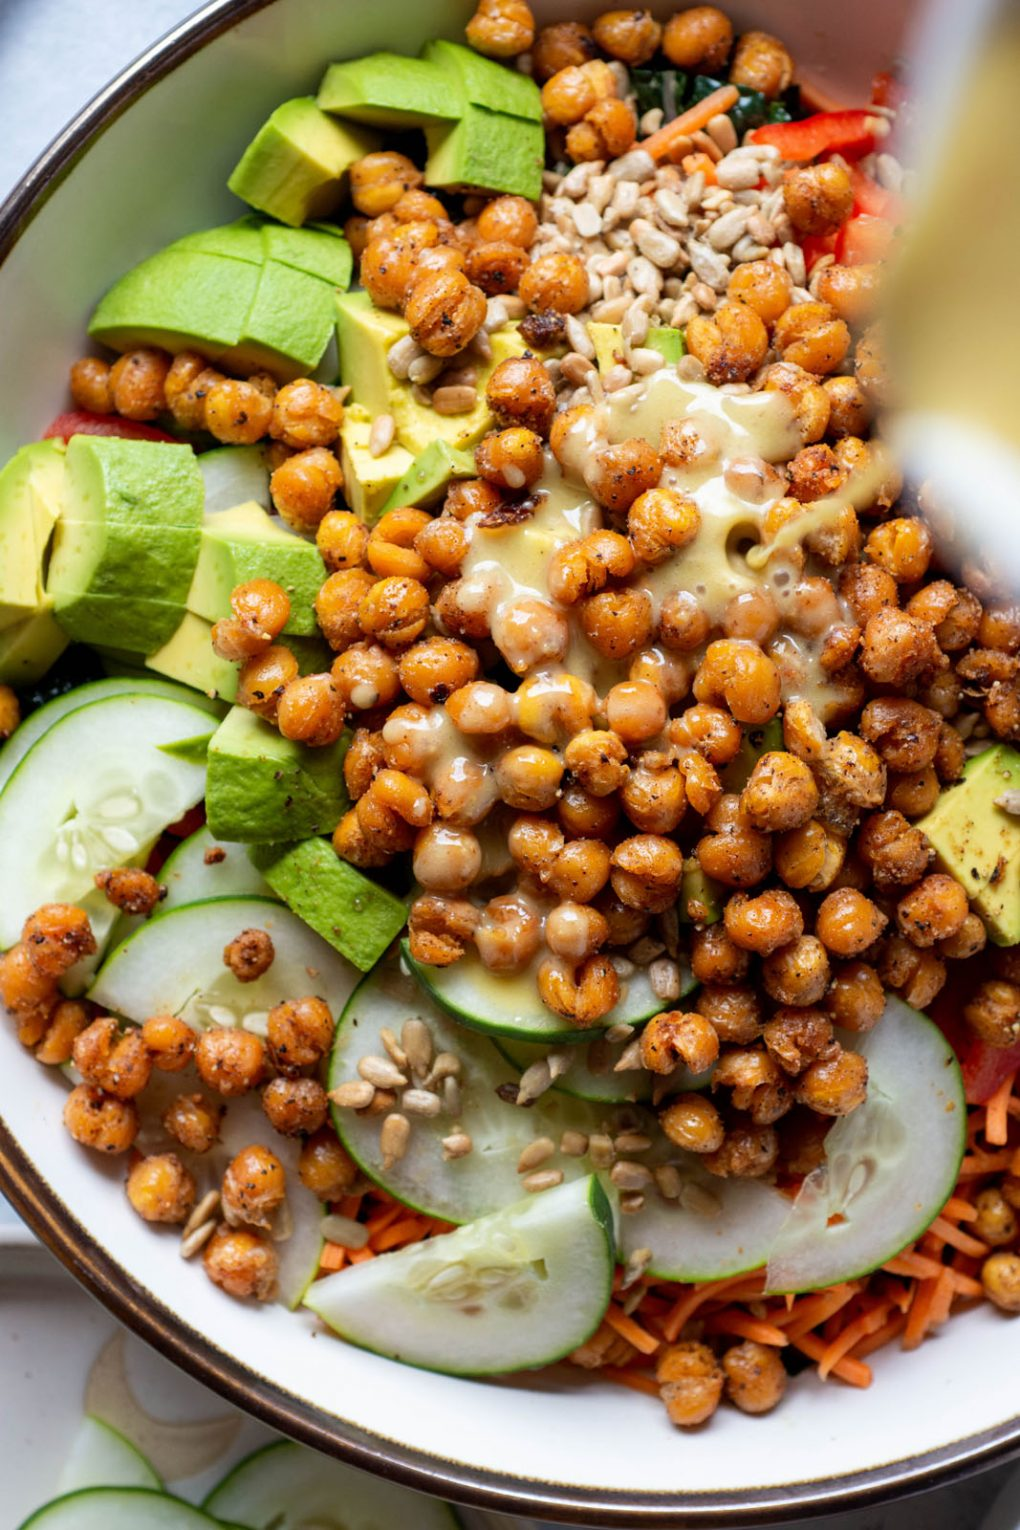 Close up over head shot of honey mustard dressing being poured over kale salad with crispy chickpeas.